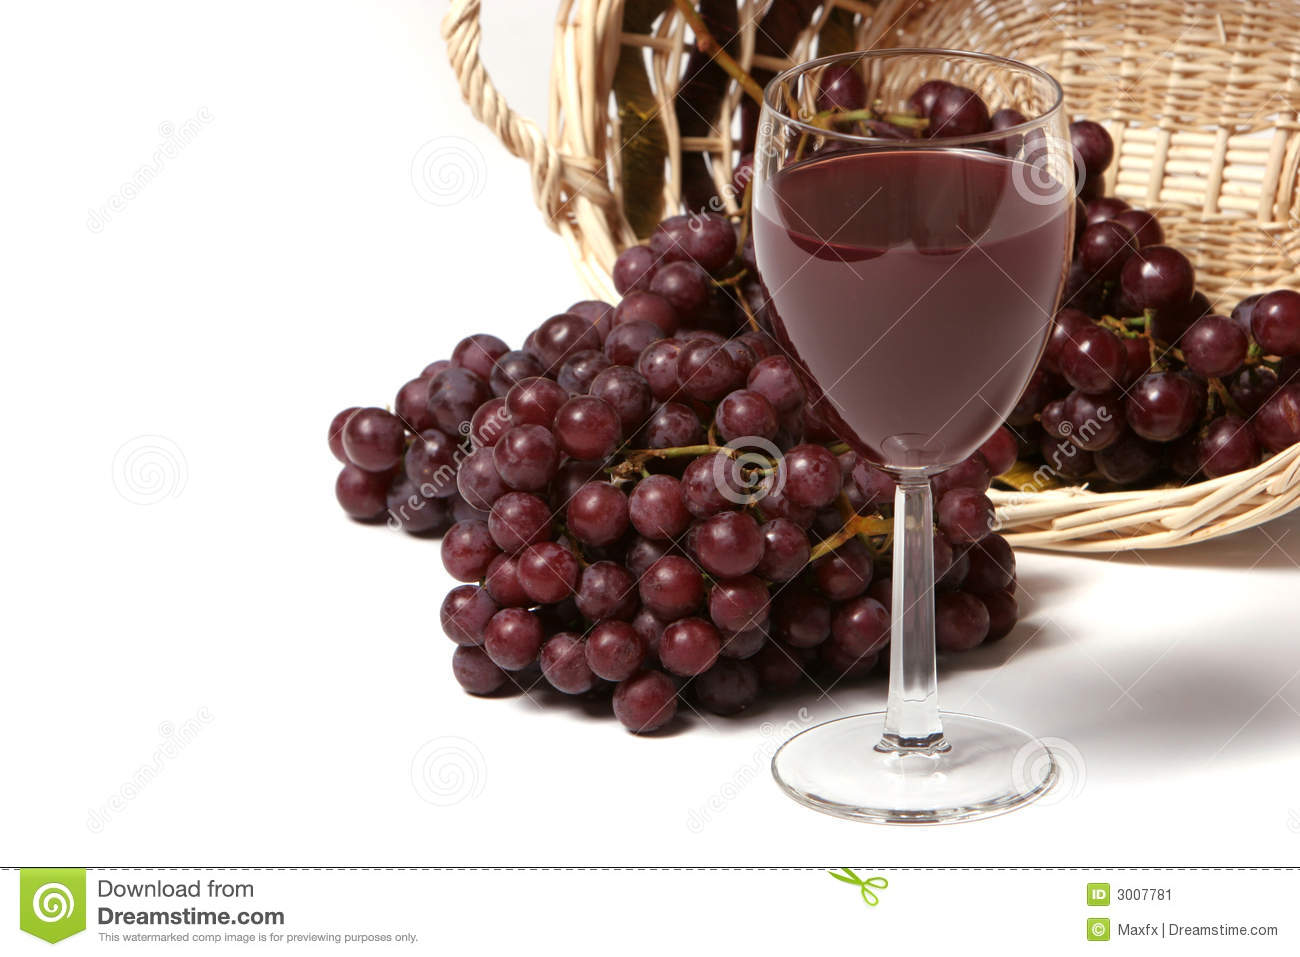 Red Wine And Grapes Stock Image - Image: 3007781